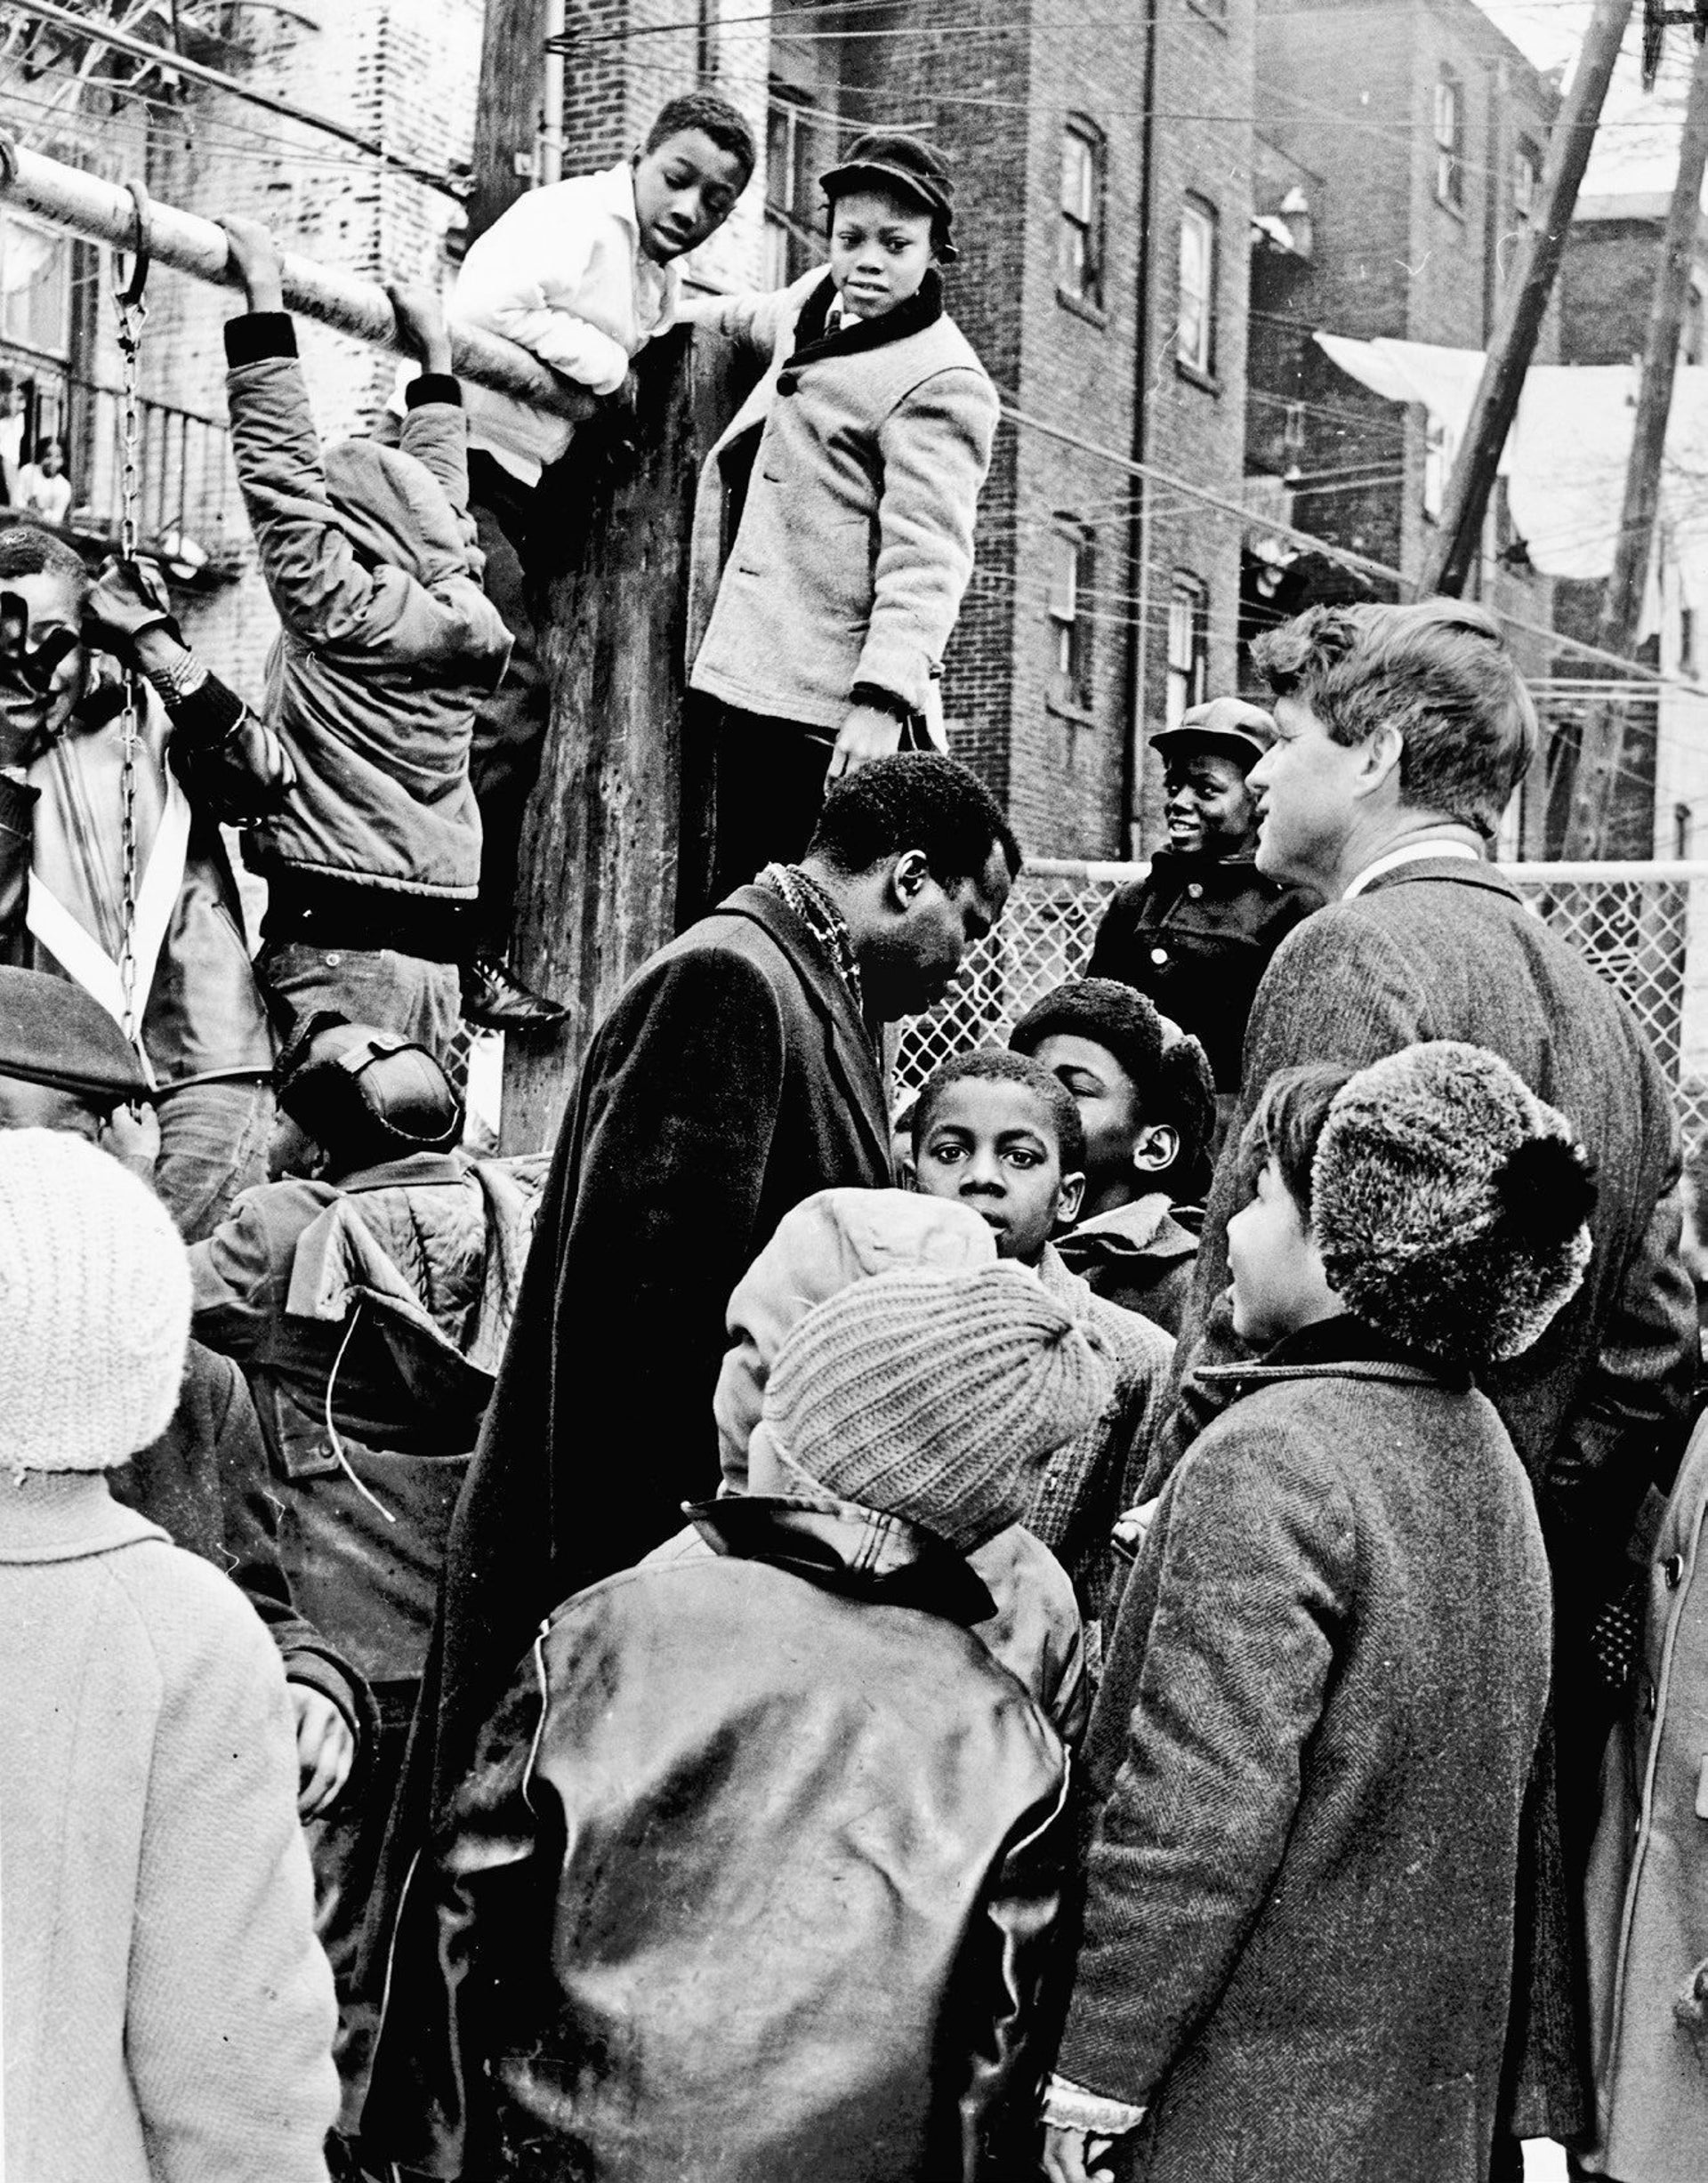 Senator Robert F. Kennedy visiting with the children who were his favorite constituents, this time at a playground in Brooklyn